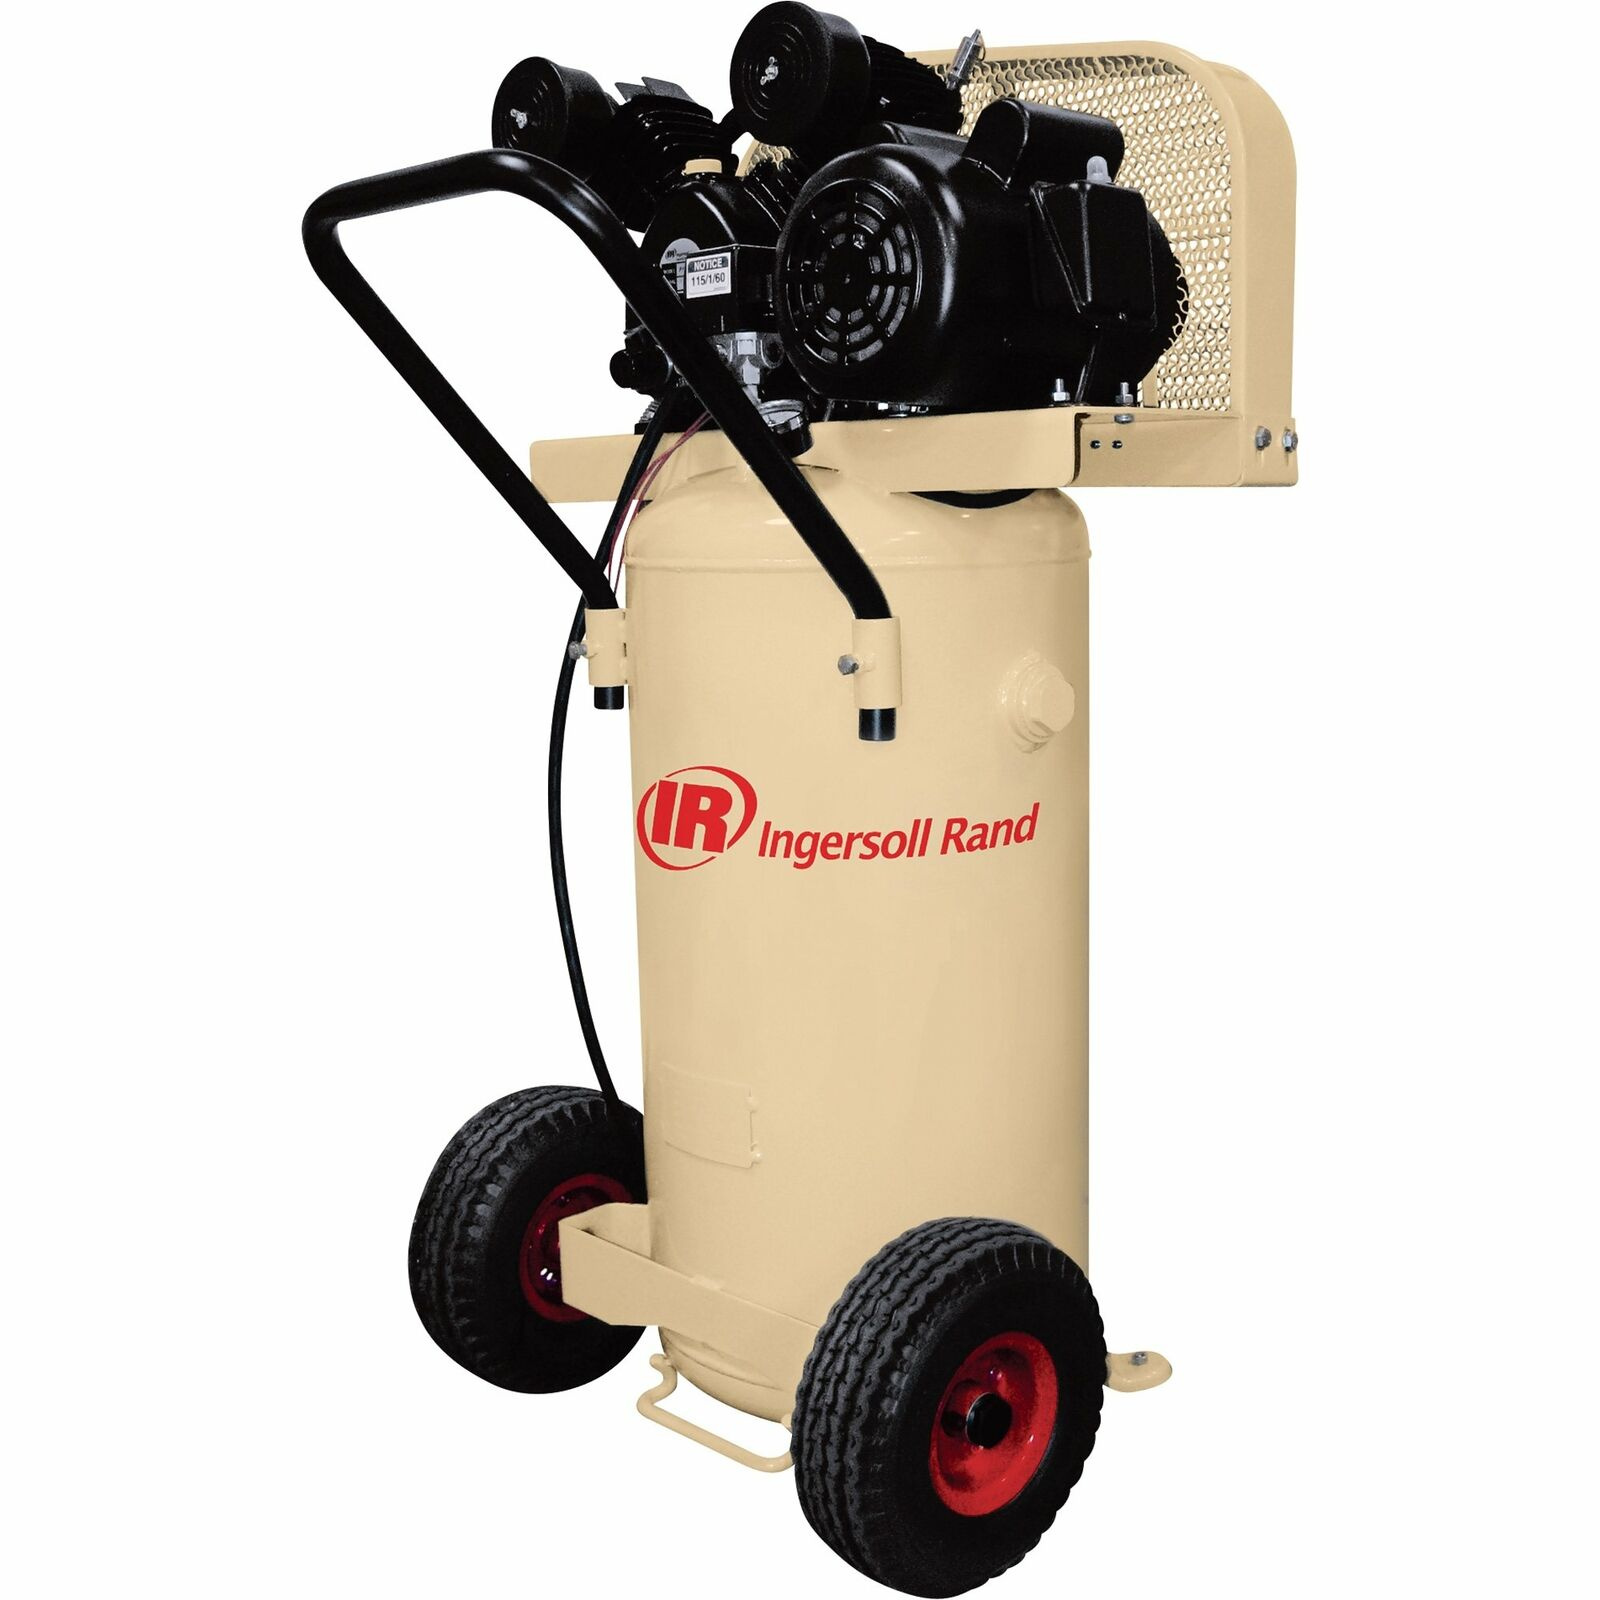 Ingersoll Rand Garage Mate-2 HP 5.2 CFM #42663401. Buy it now for 649.99